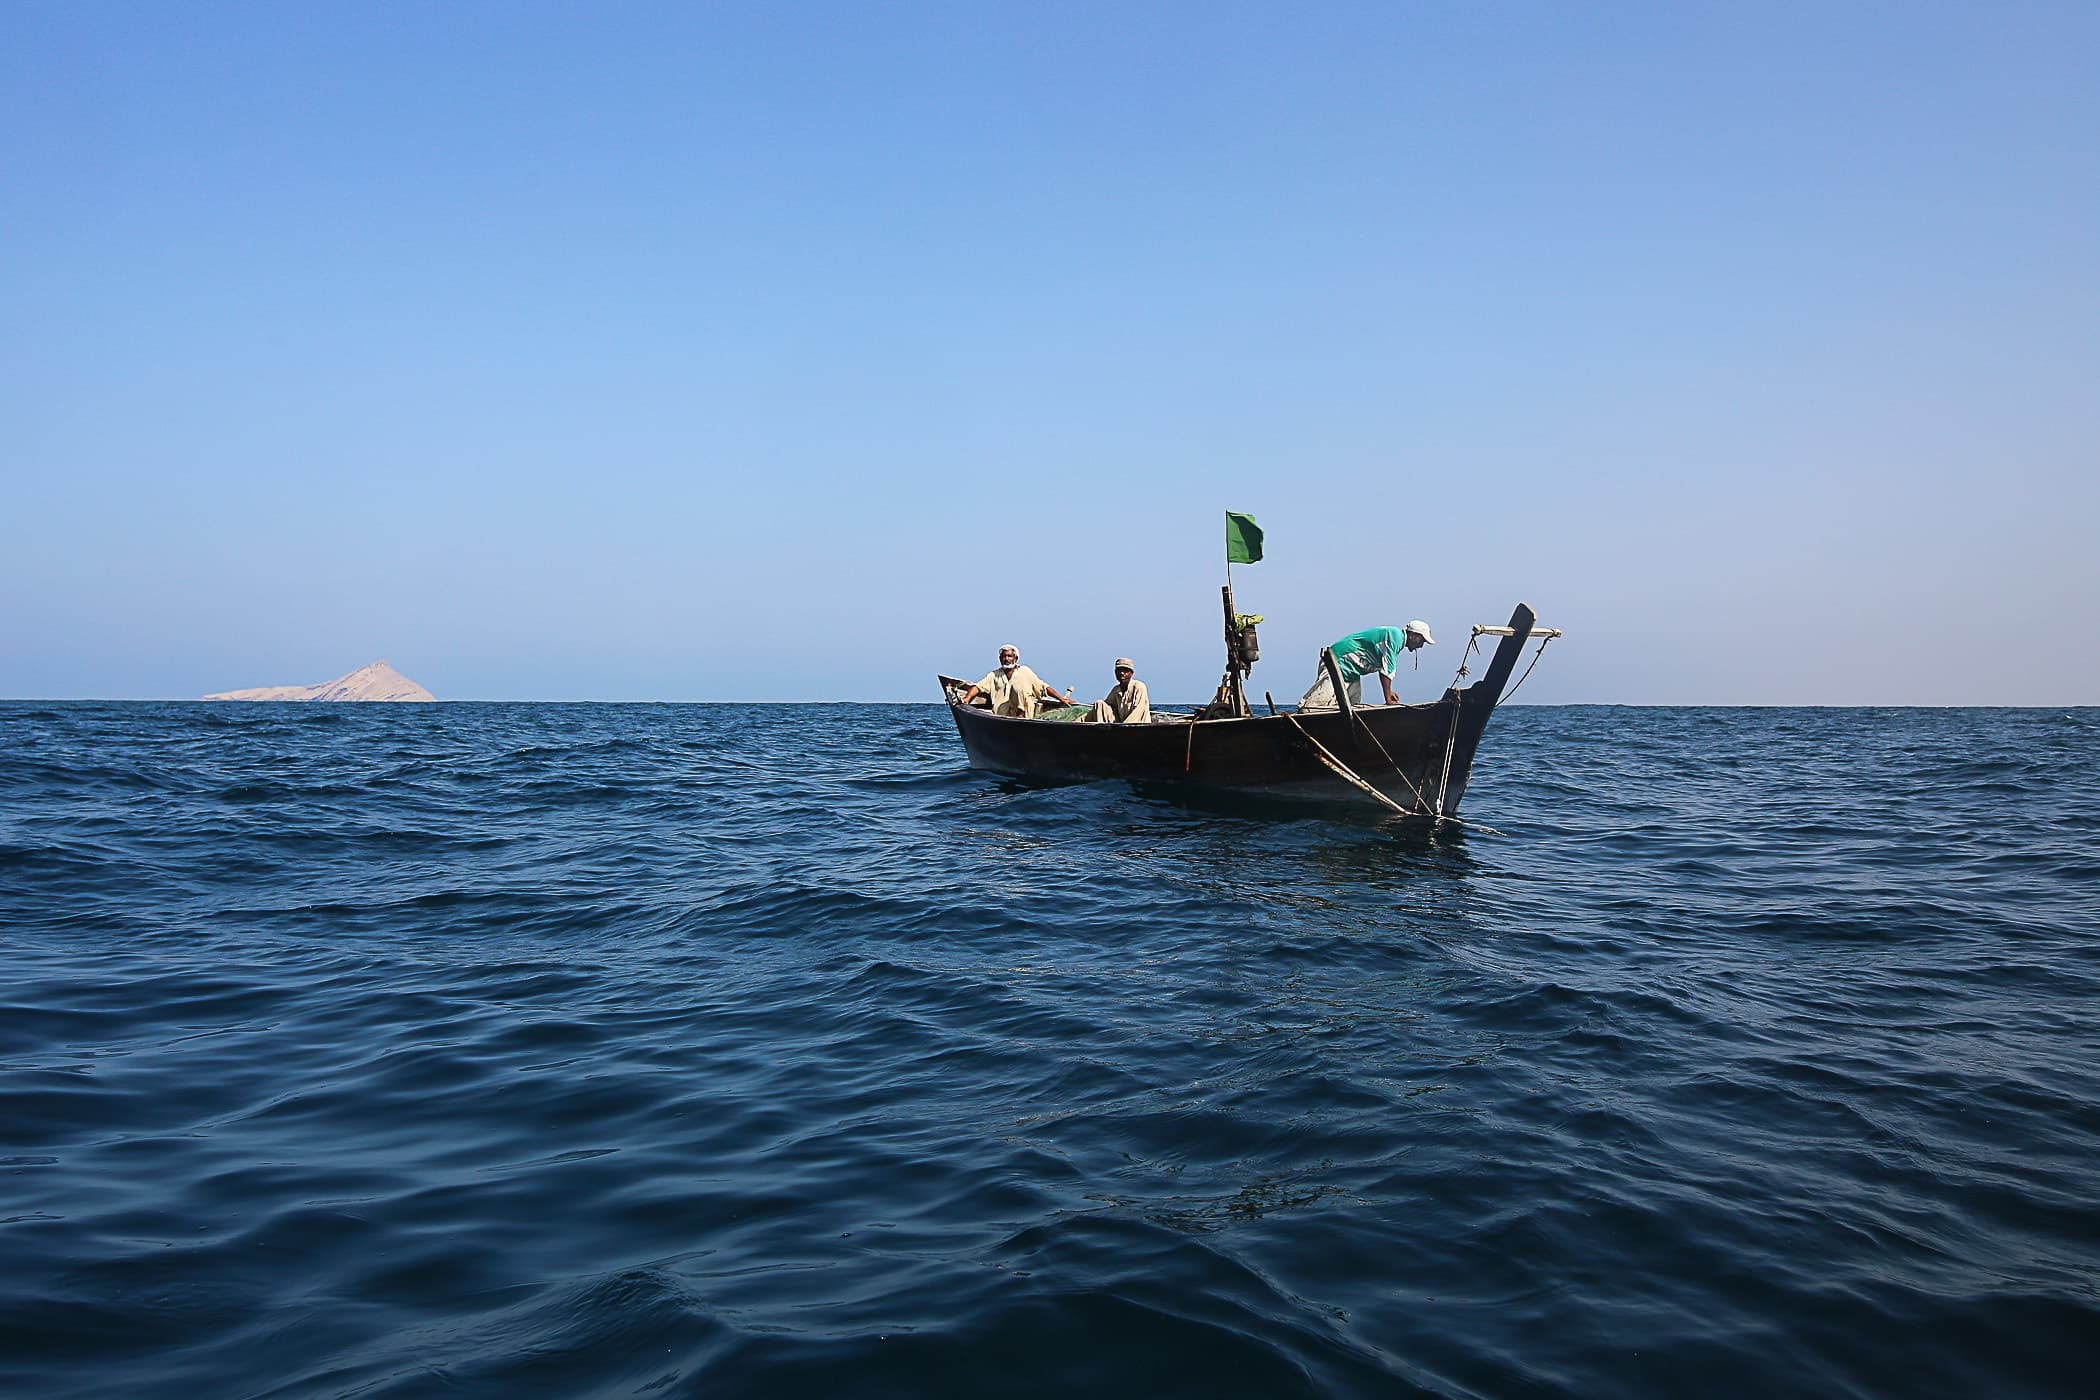 One of the other fishermen from the village passes us as they head out to the location of their nets.